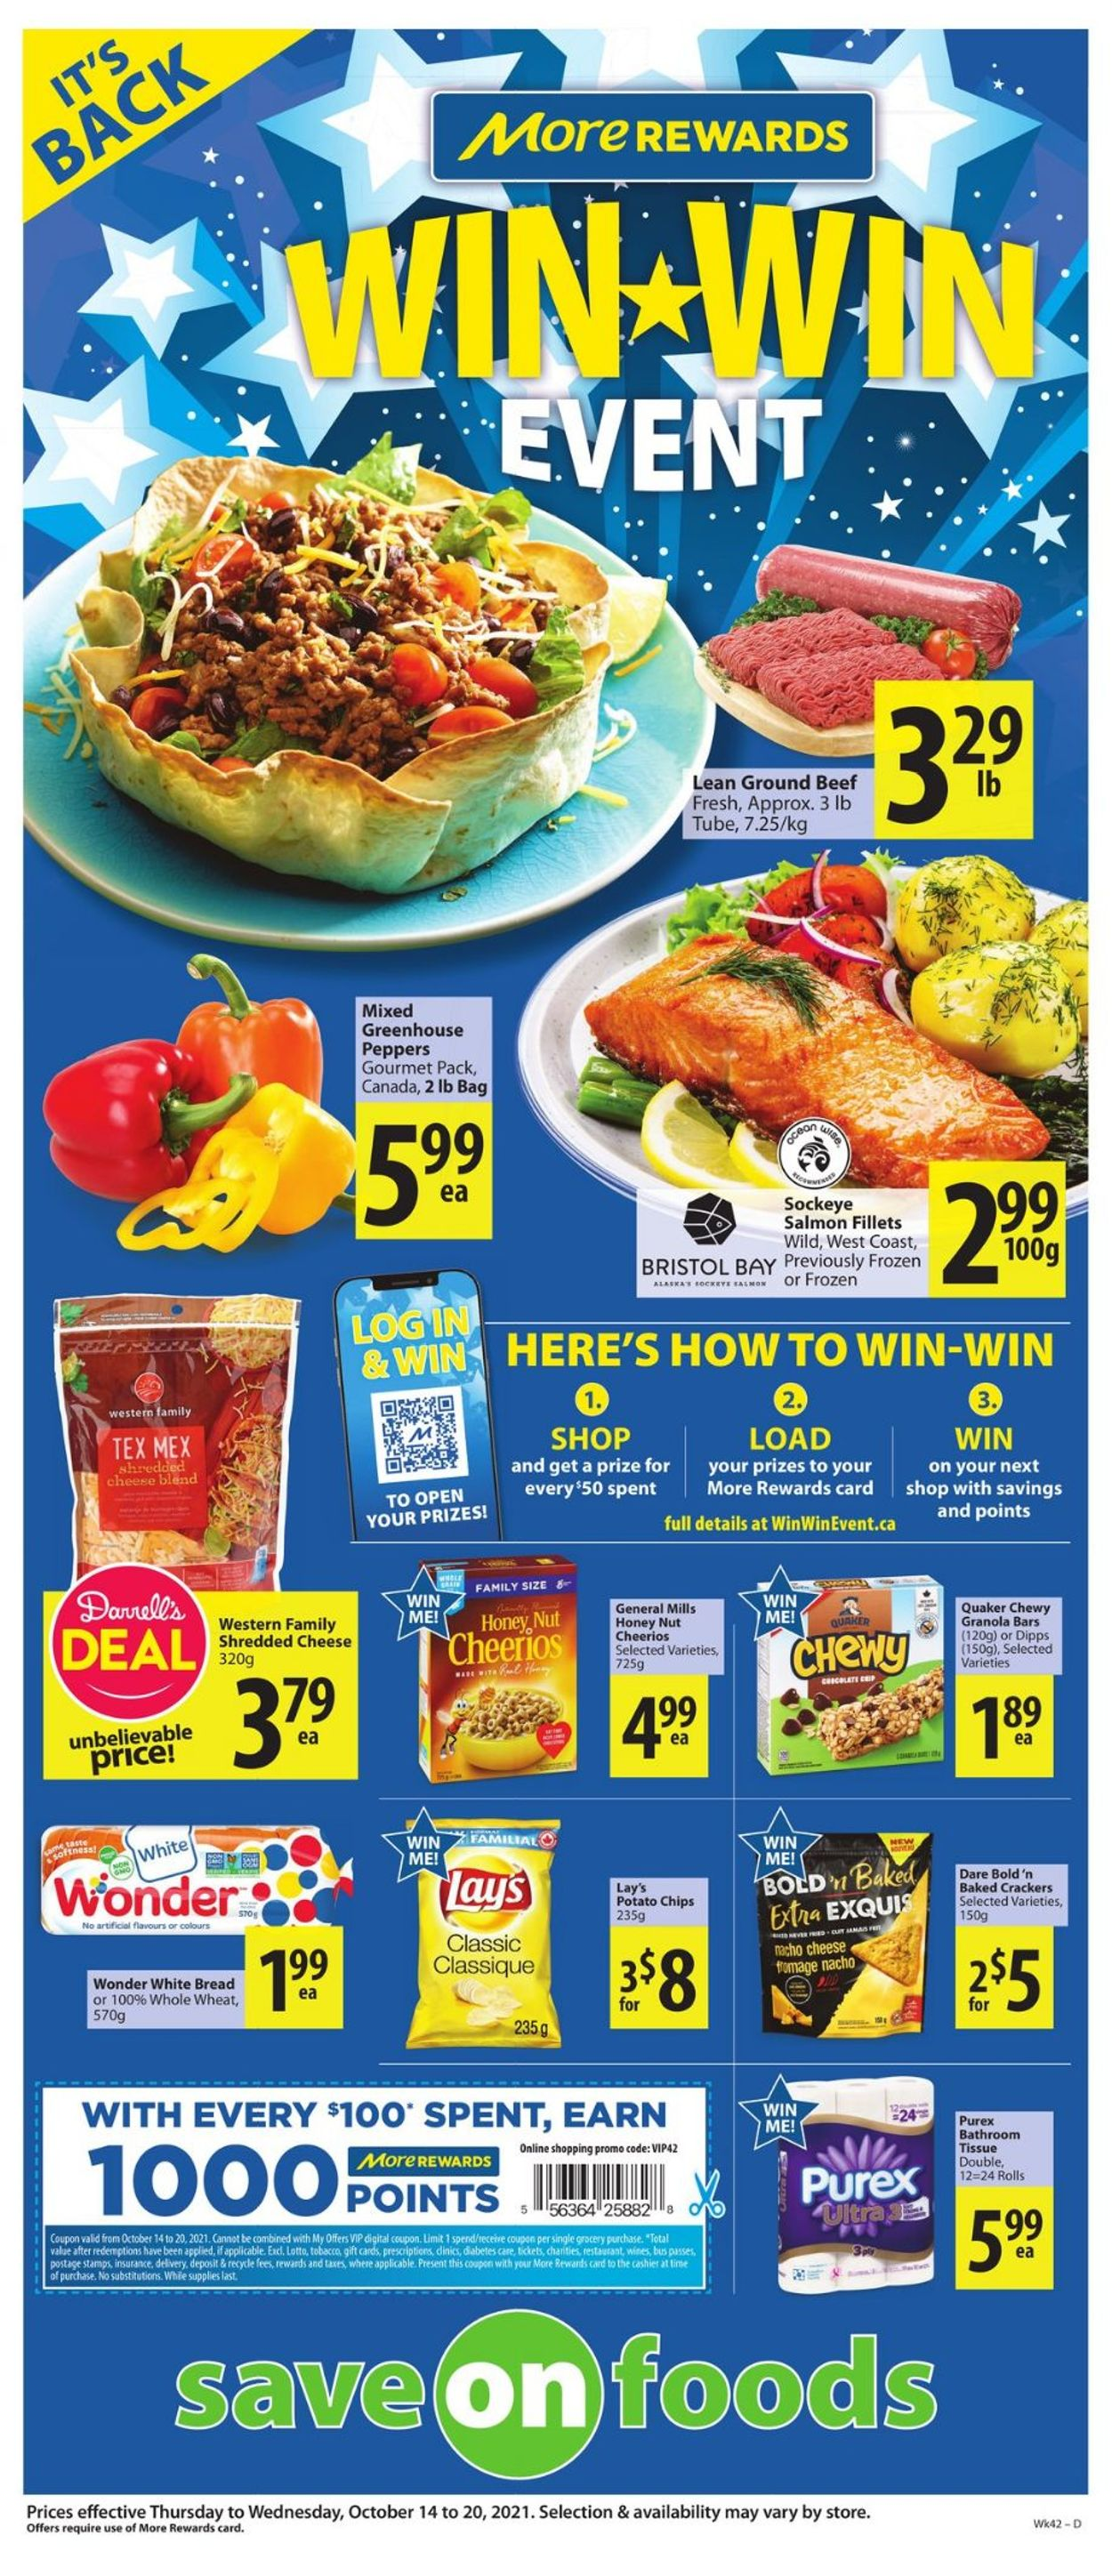 Save-On-Foods Flyer - 10/14-10/20/2021